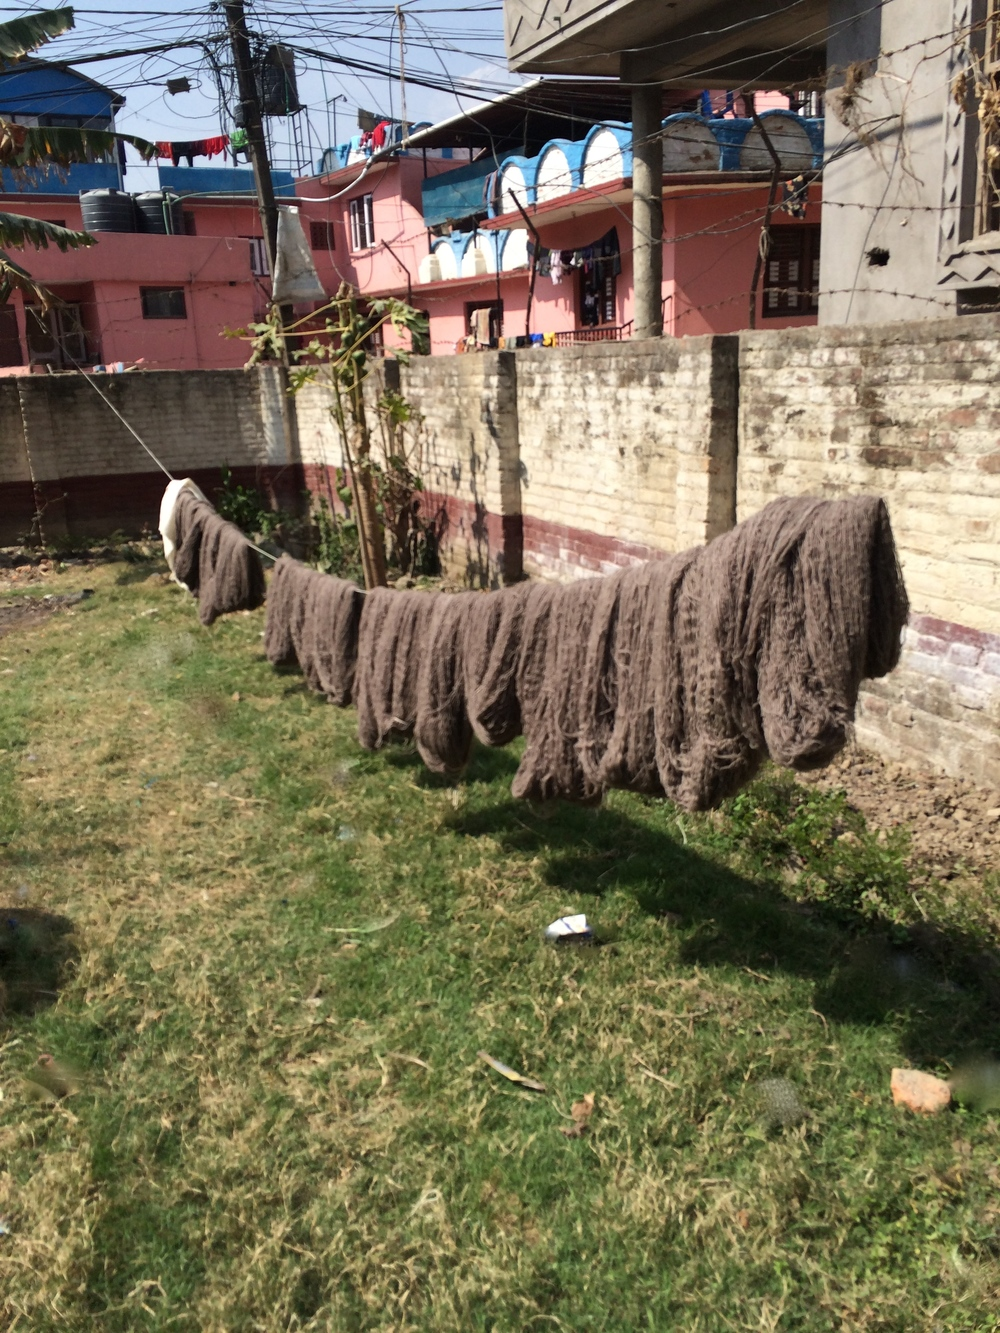 Wool yarn drying in the sun.